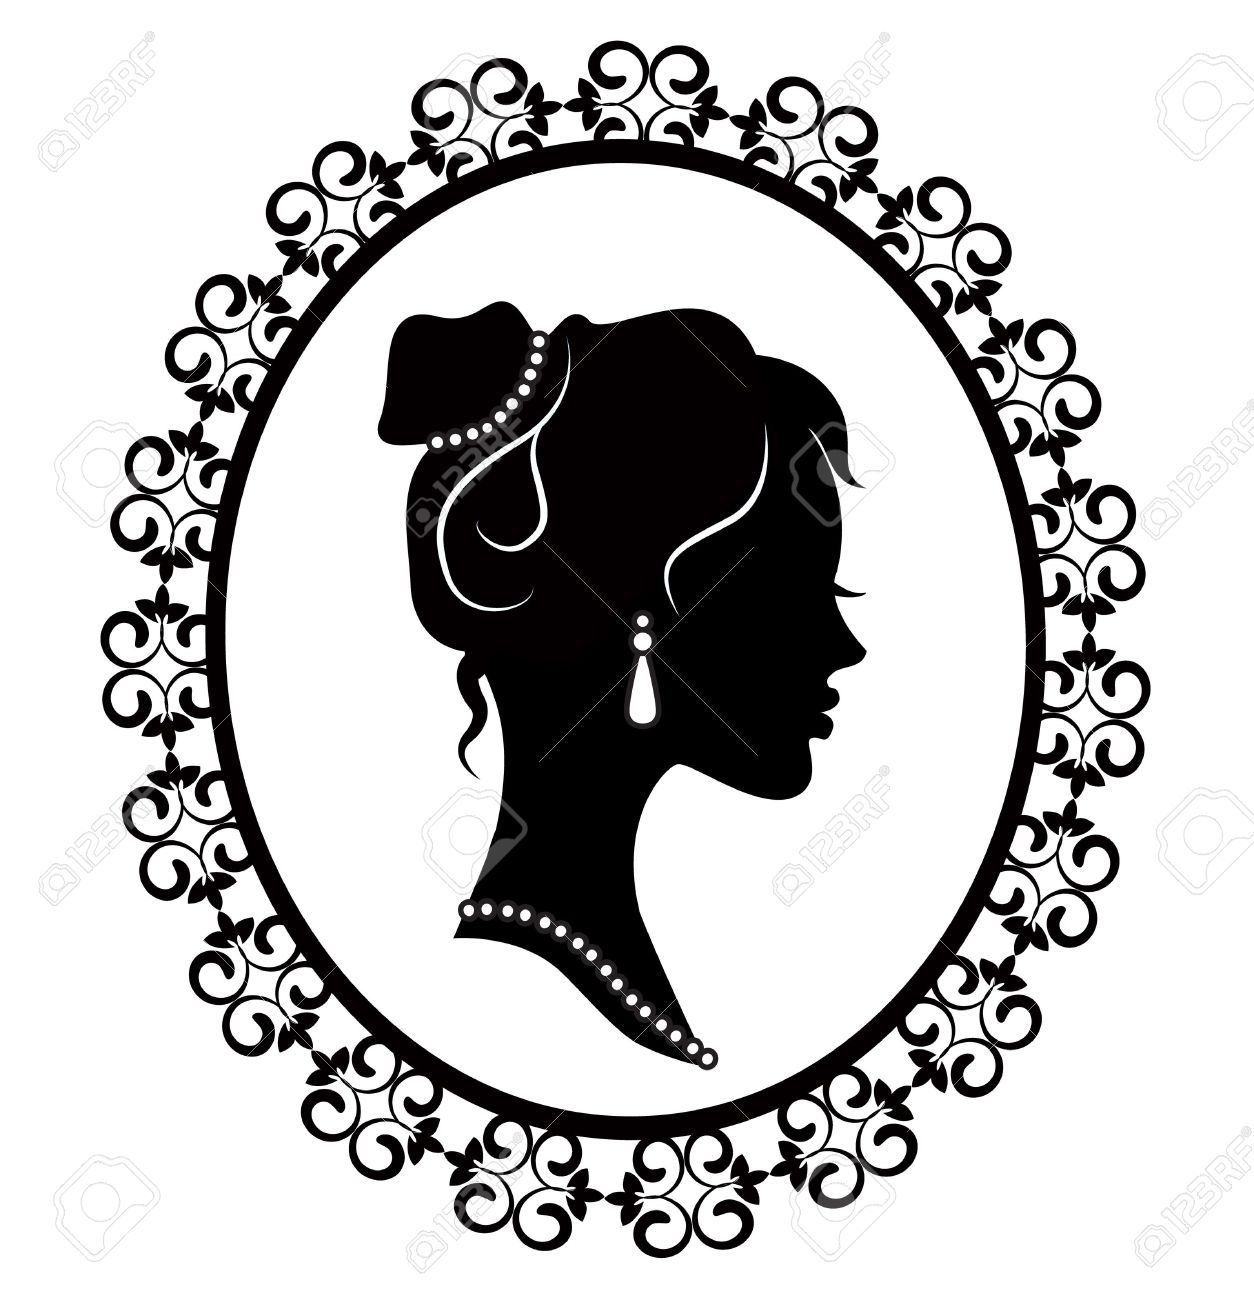 19561434-retro-silhouette-profile-of-a-young-girl-in-a